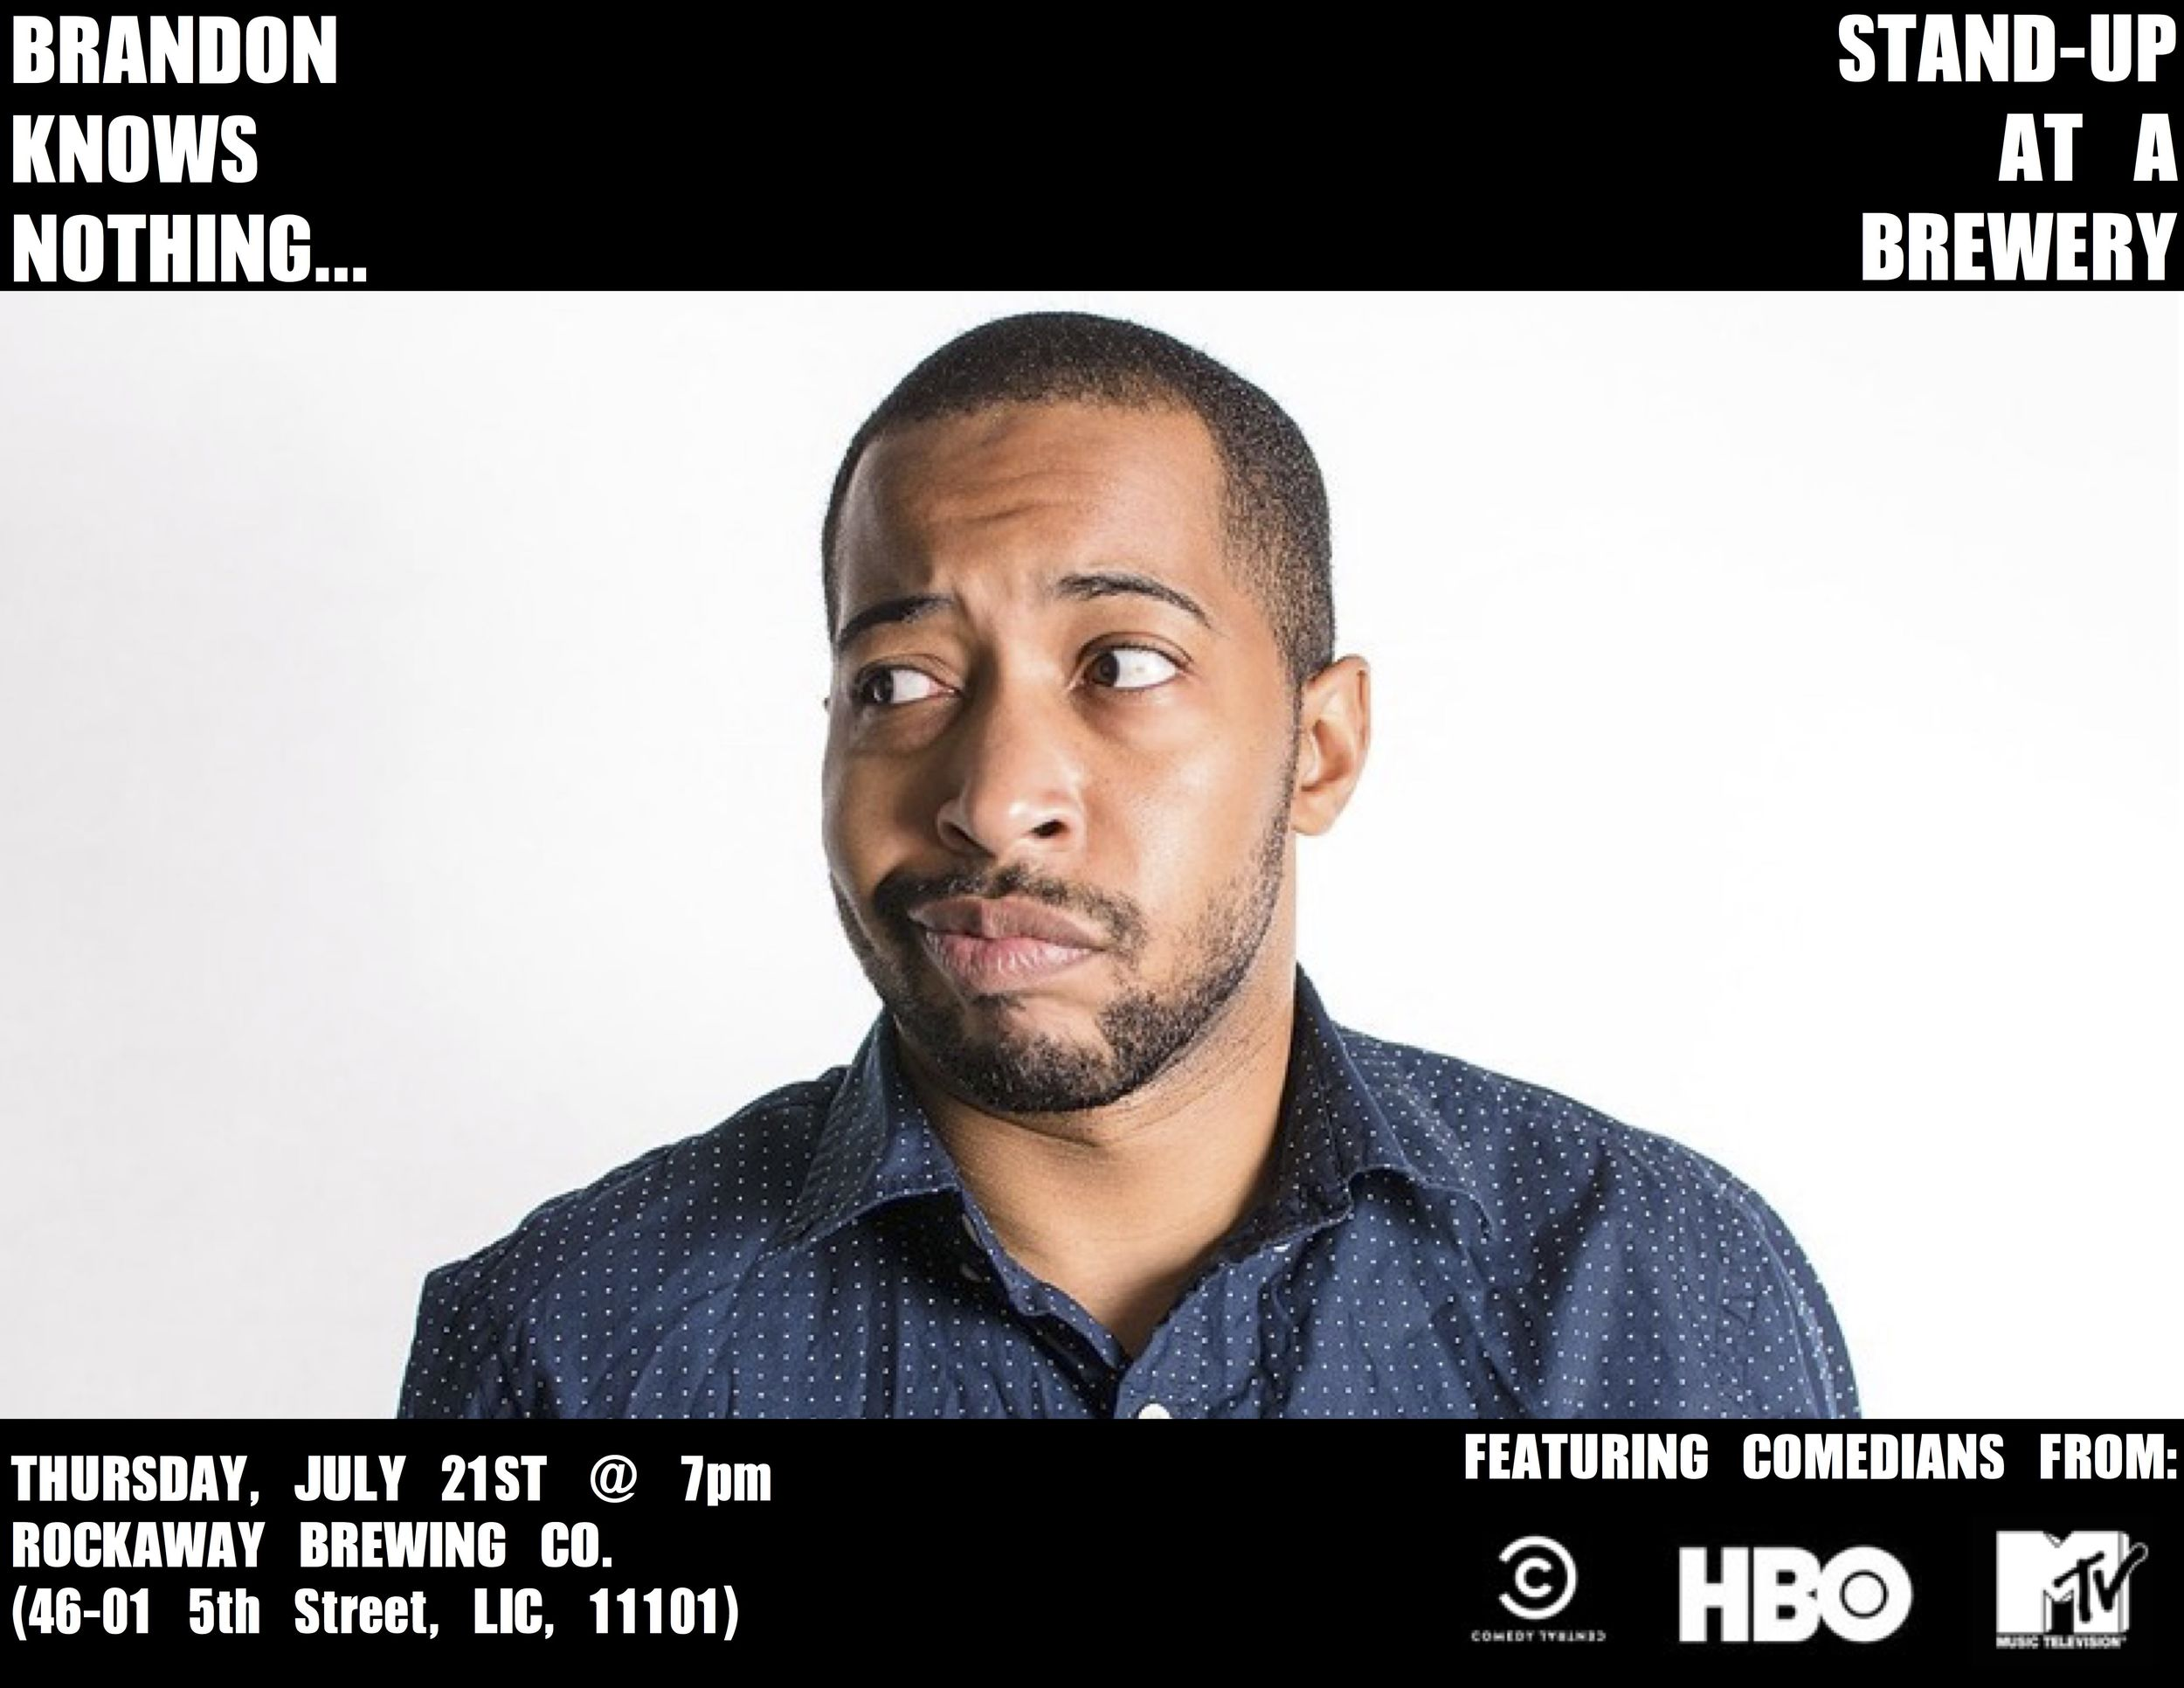 Producer/comedian Brandon Collins (Comedy Outliers) brings stand-up comedy back to our local brewery in Long Island City!     During this FREE stand-up showcase professional comedians will performing in an intimate setting while the host discusses the history of beer and dropping other bits of knowledge that they were not aware of before the show...which is a lot!     This month's line-up will include: Will Miles (BK's 50 Funniest), Sooyah Jun (Comic Diversity), KC Arora (Carolines on Broadway) and Alex English (Loudmouth Comedy Show)!      Thursday, July 21st at 7pm    Rockaway Brewery (46-01 5th St, Long Island City, NY 11101)!